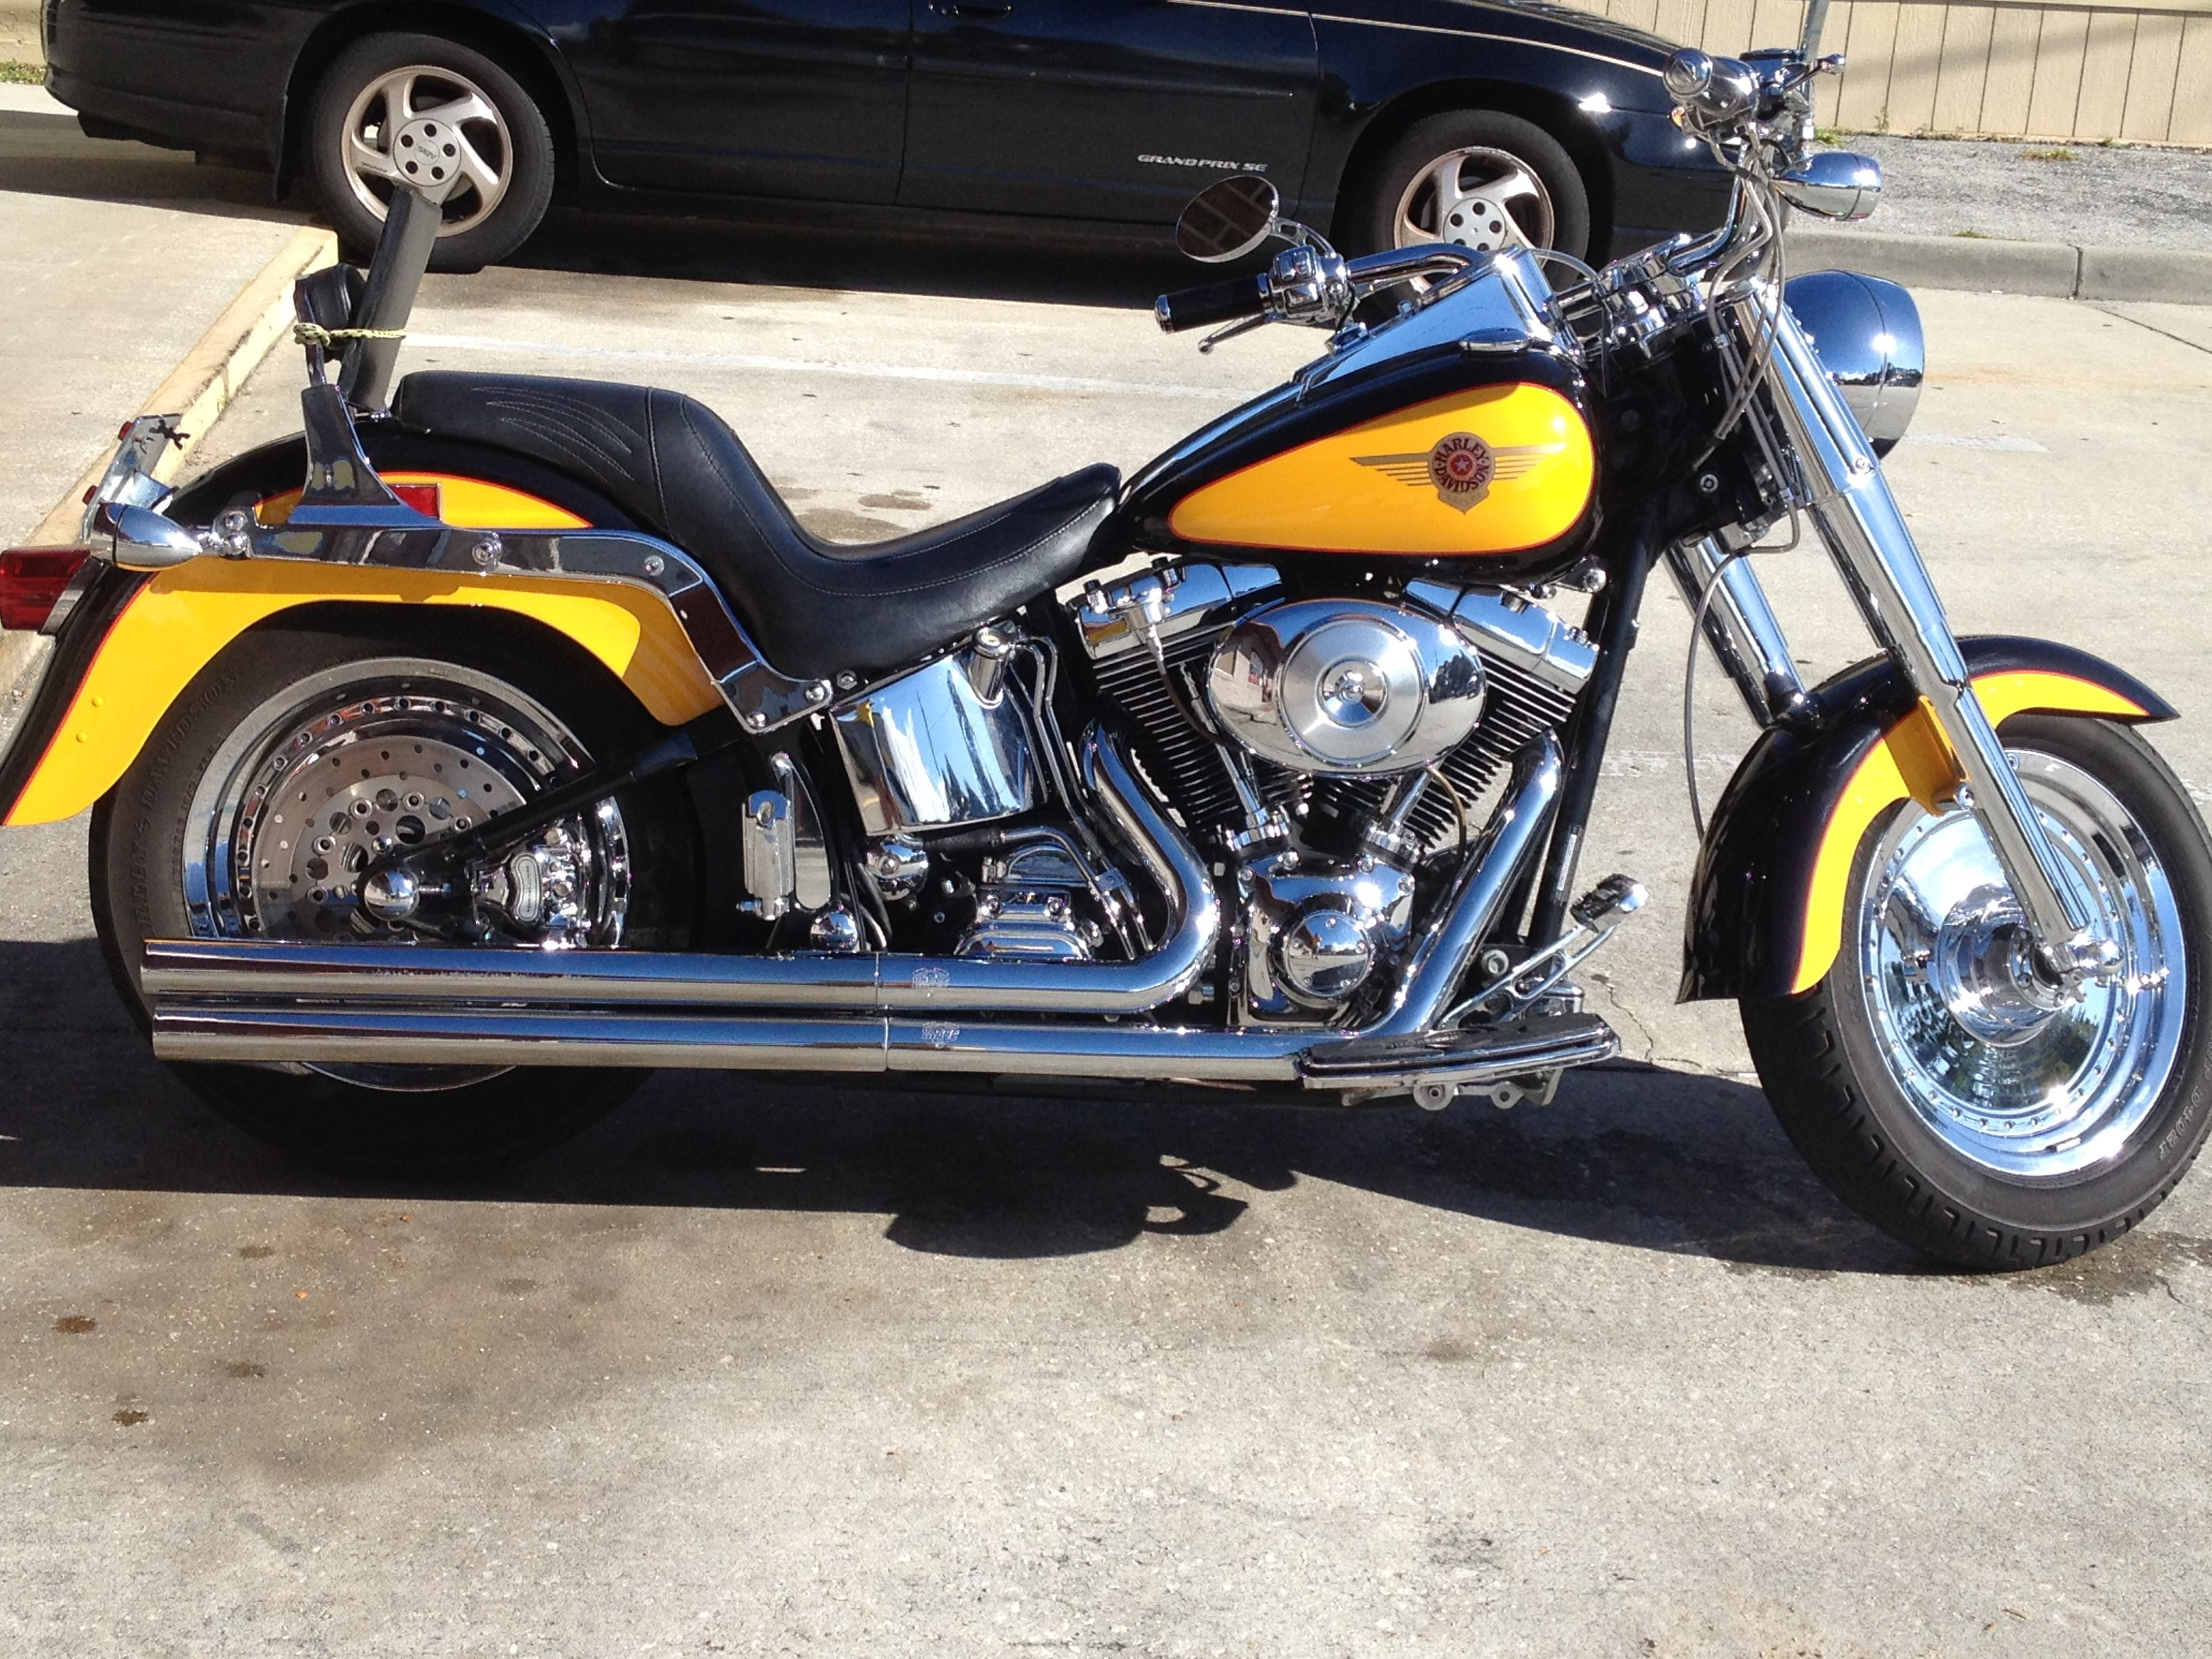 2000 harley davidson flstf softail fat boy yellow and. Black Bedroom Furniture Sets. Home Design Ideas